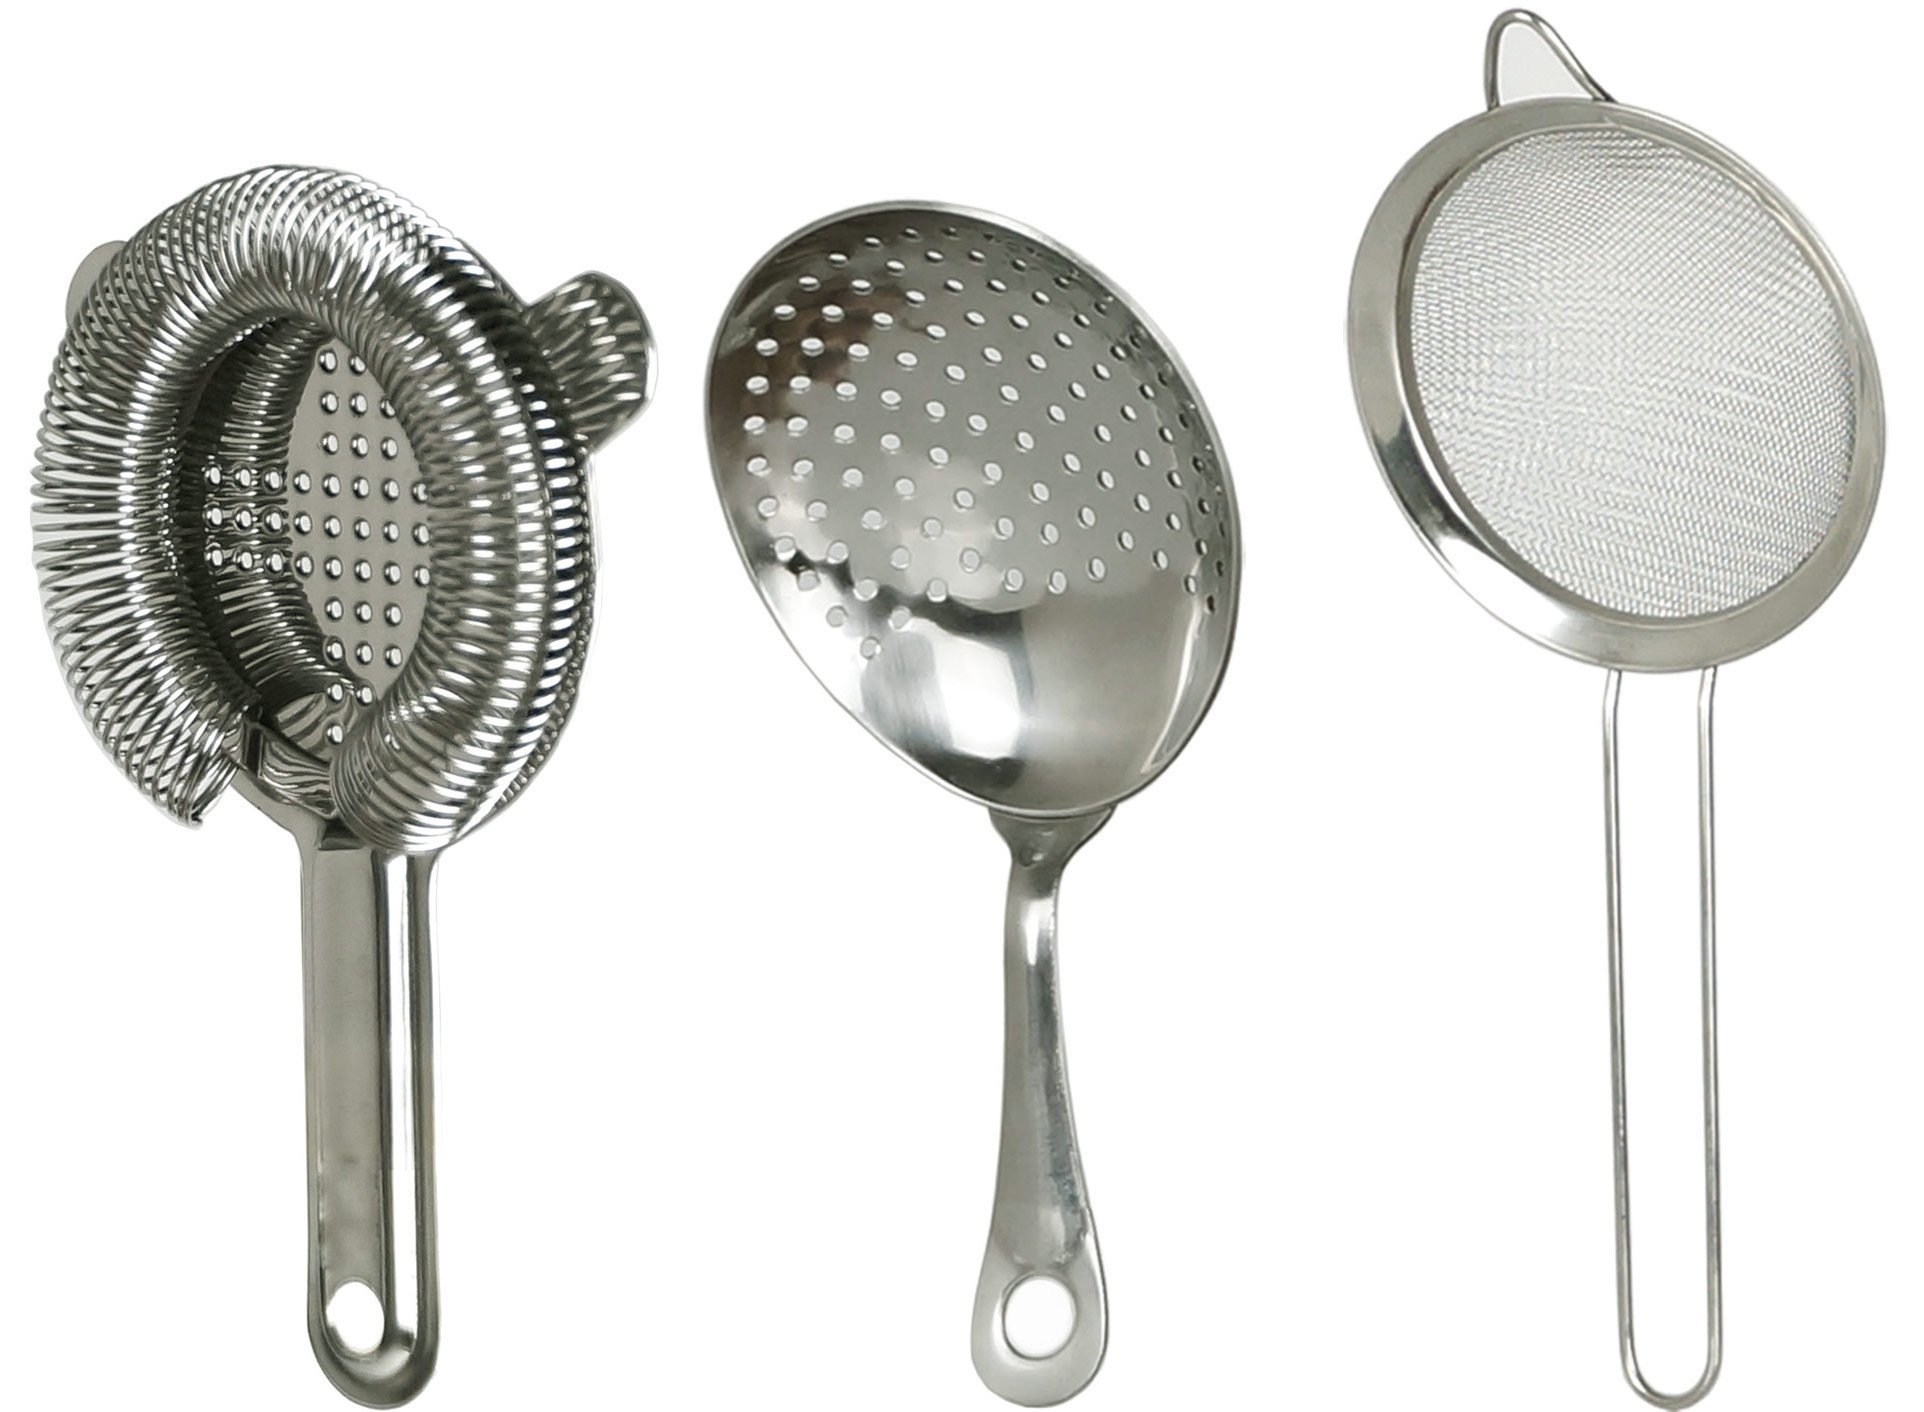 Jillmo Stainless Steel Bar Cocktail Strainer Set - Include 100 Wire Spring Hawthorn Strainer Julep Strainer Sifter. by Jillmo (Image #1)